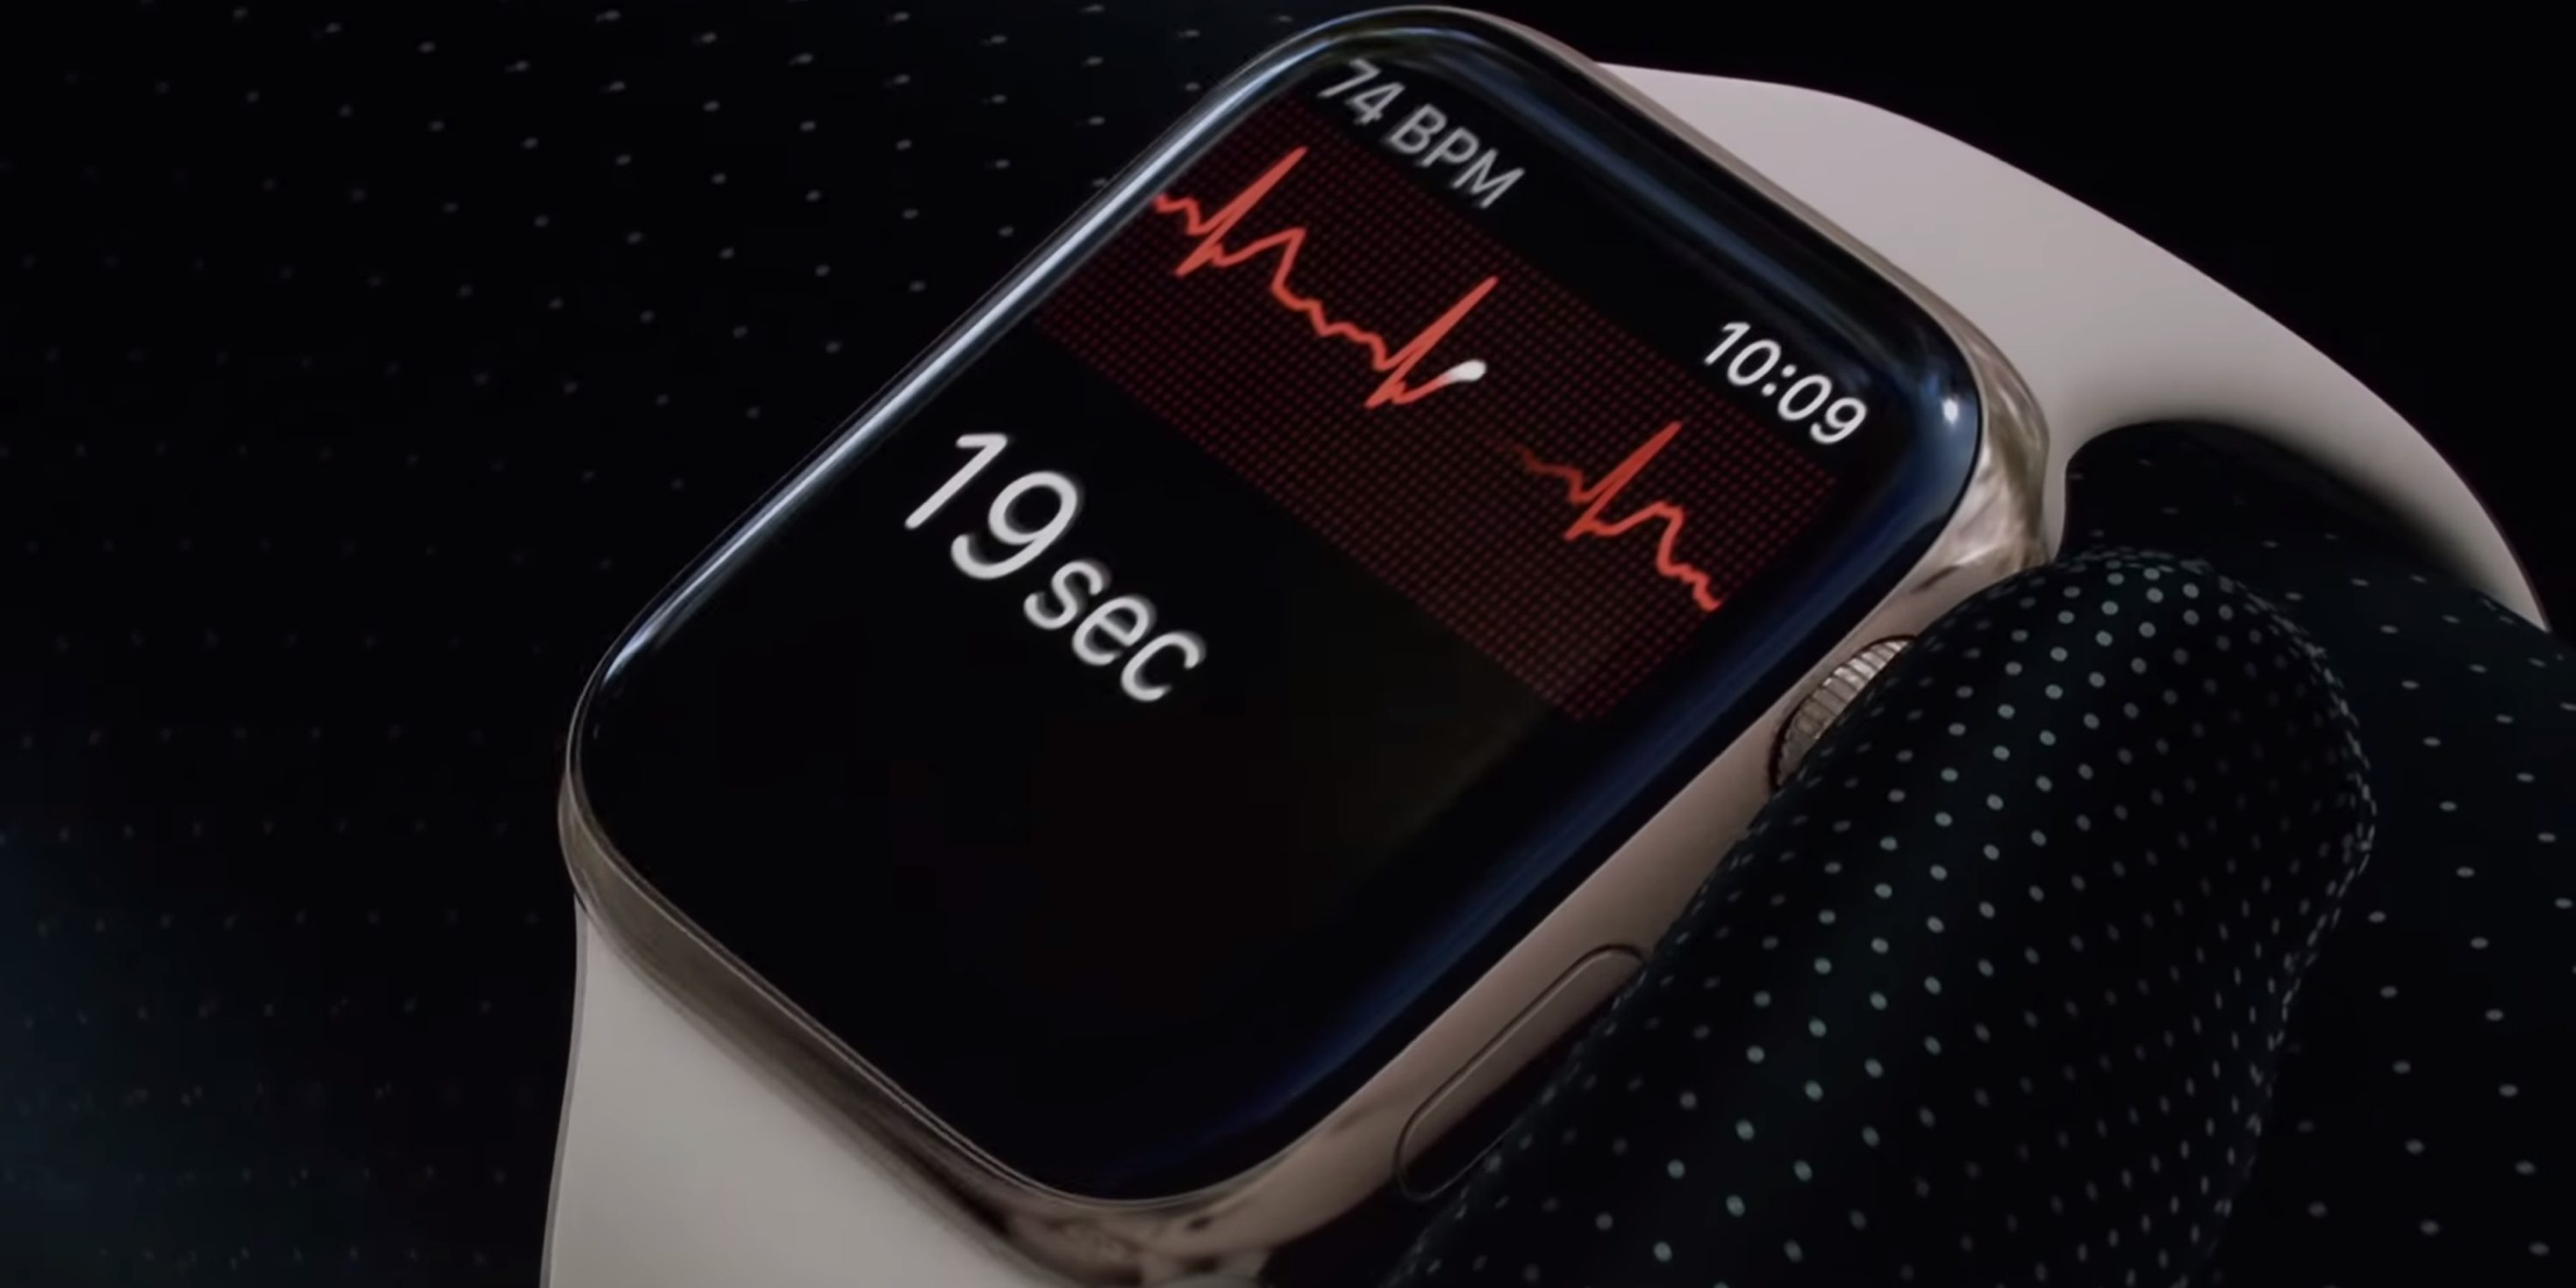 Apple Watch Series 4 again saved the man's life